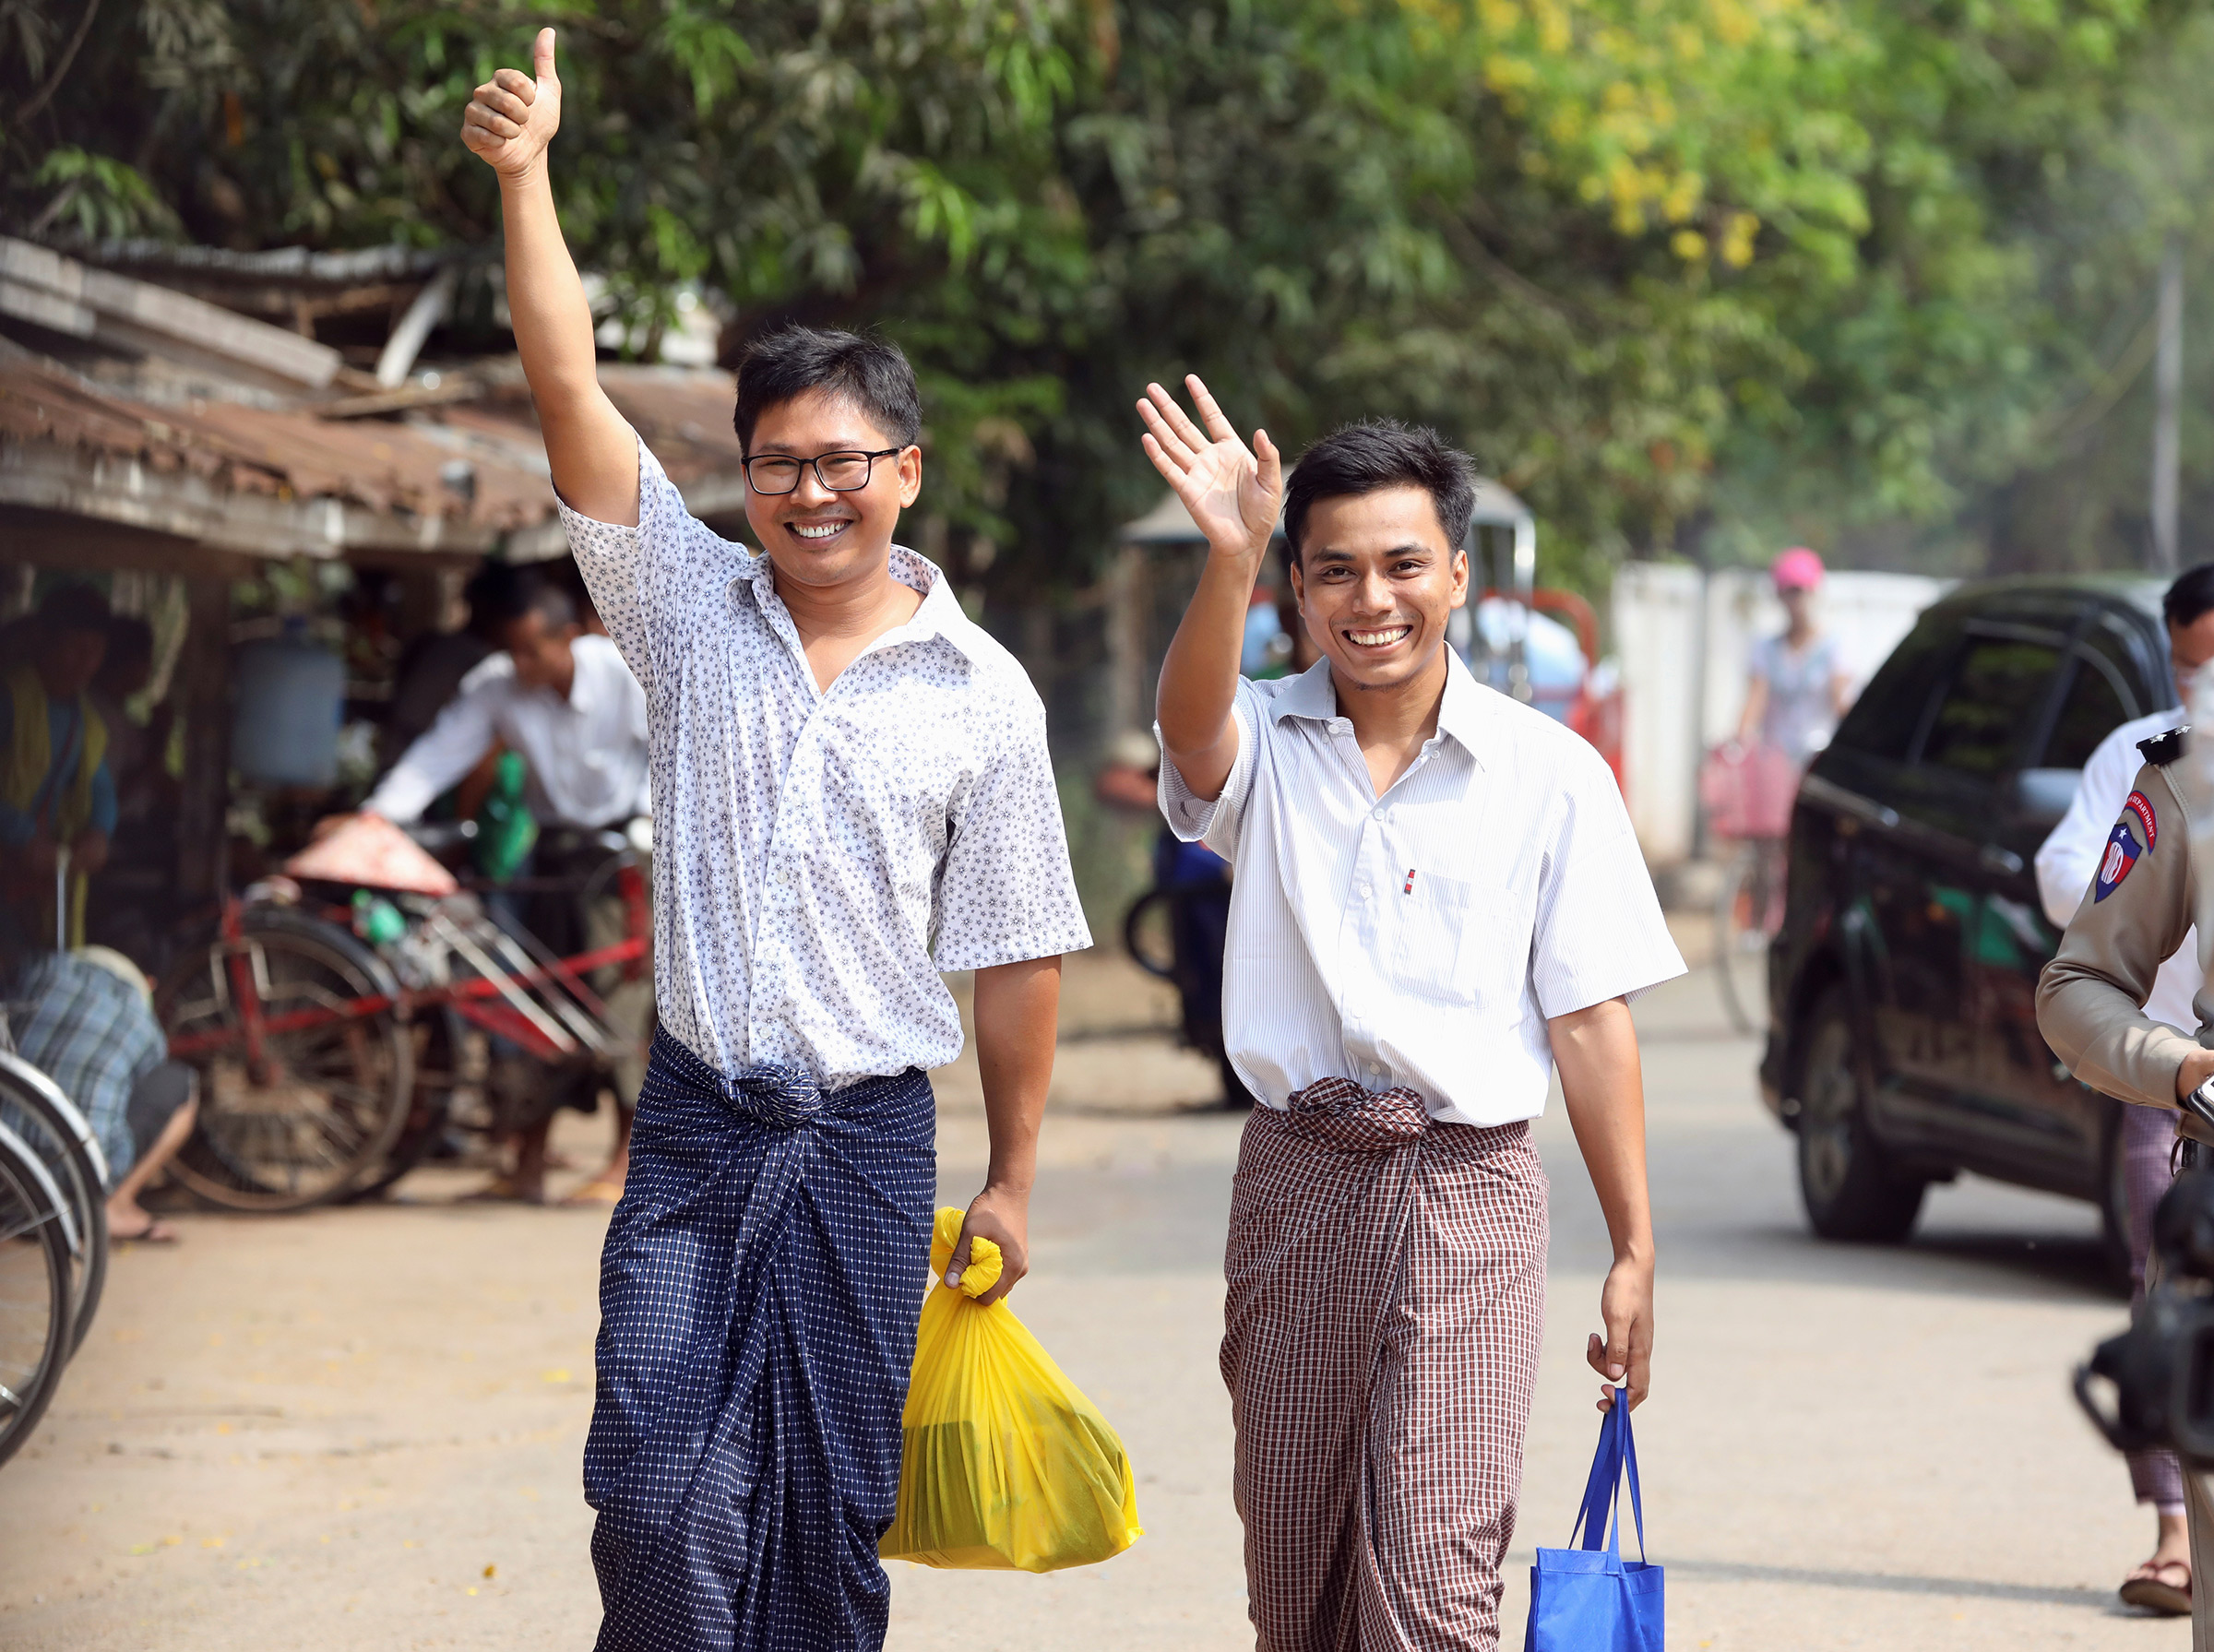 A rare bright spot: Wa Lone and Kyaw Soe Oo Leave prison May 6